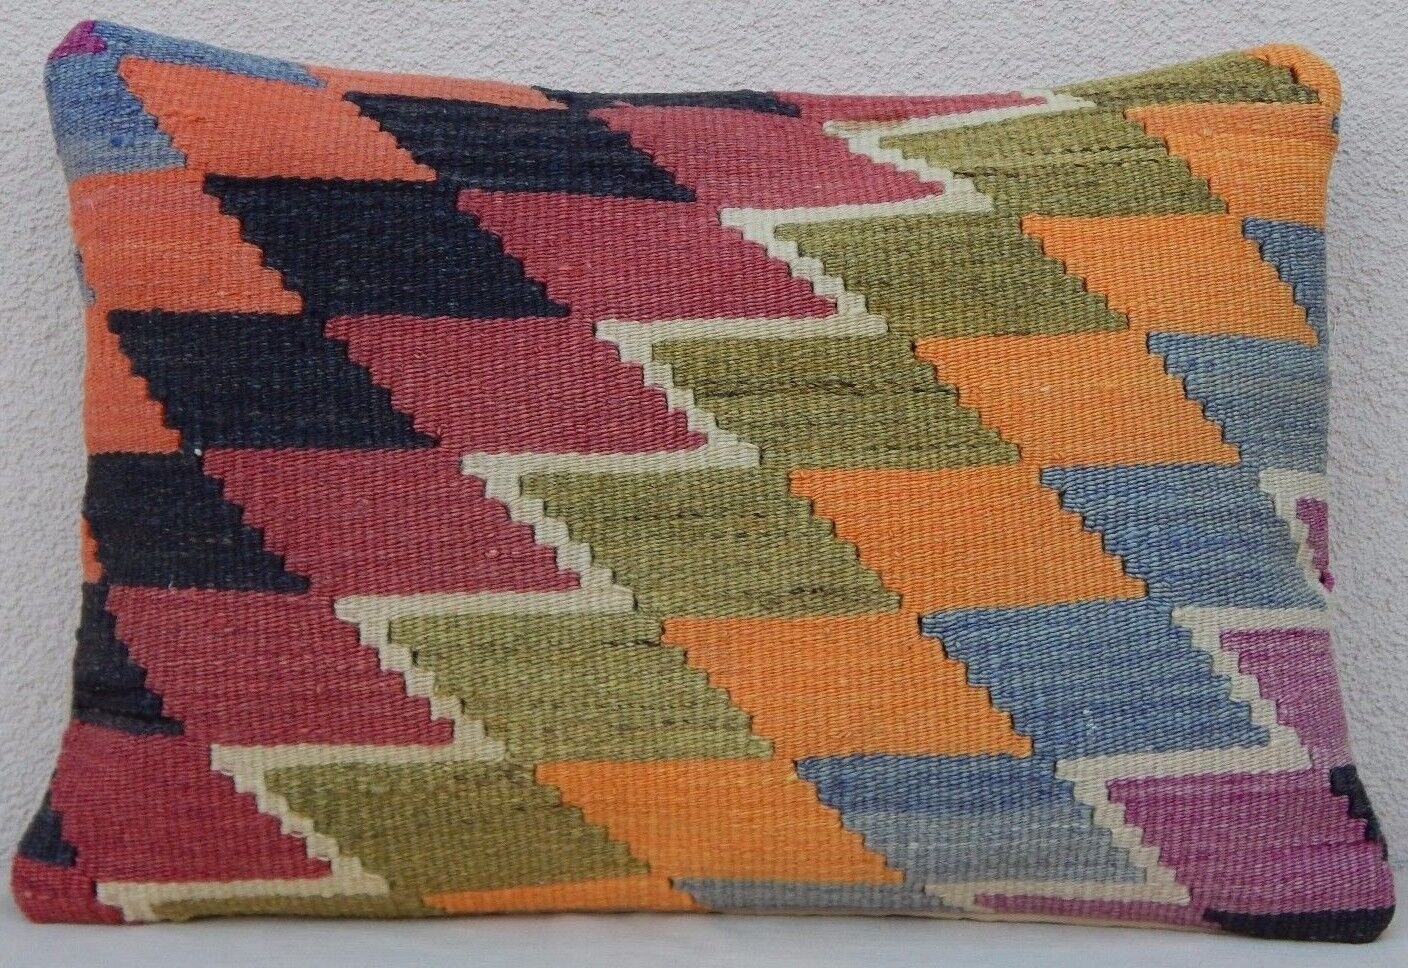 14'' x 20'' Old Pale Kilim Rug Lumbar Throw Pillow Cover, Large Handmade Faded